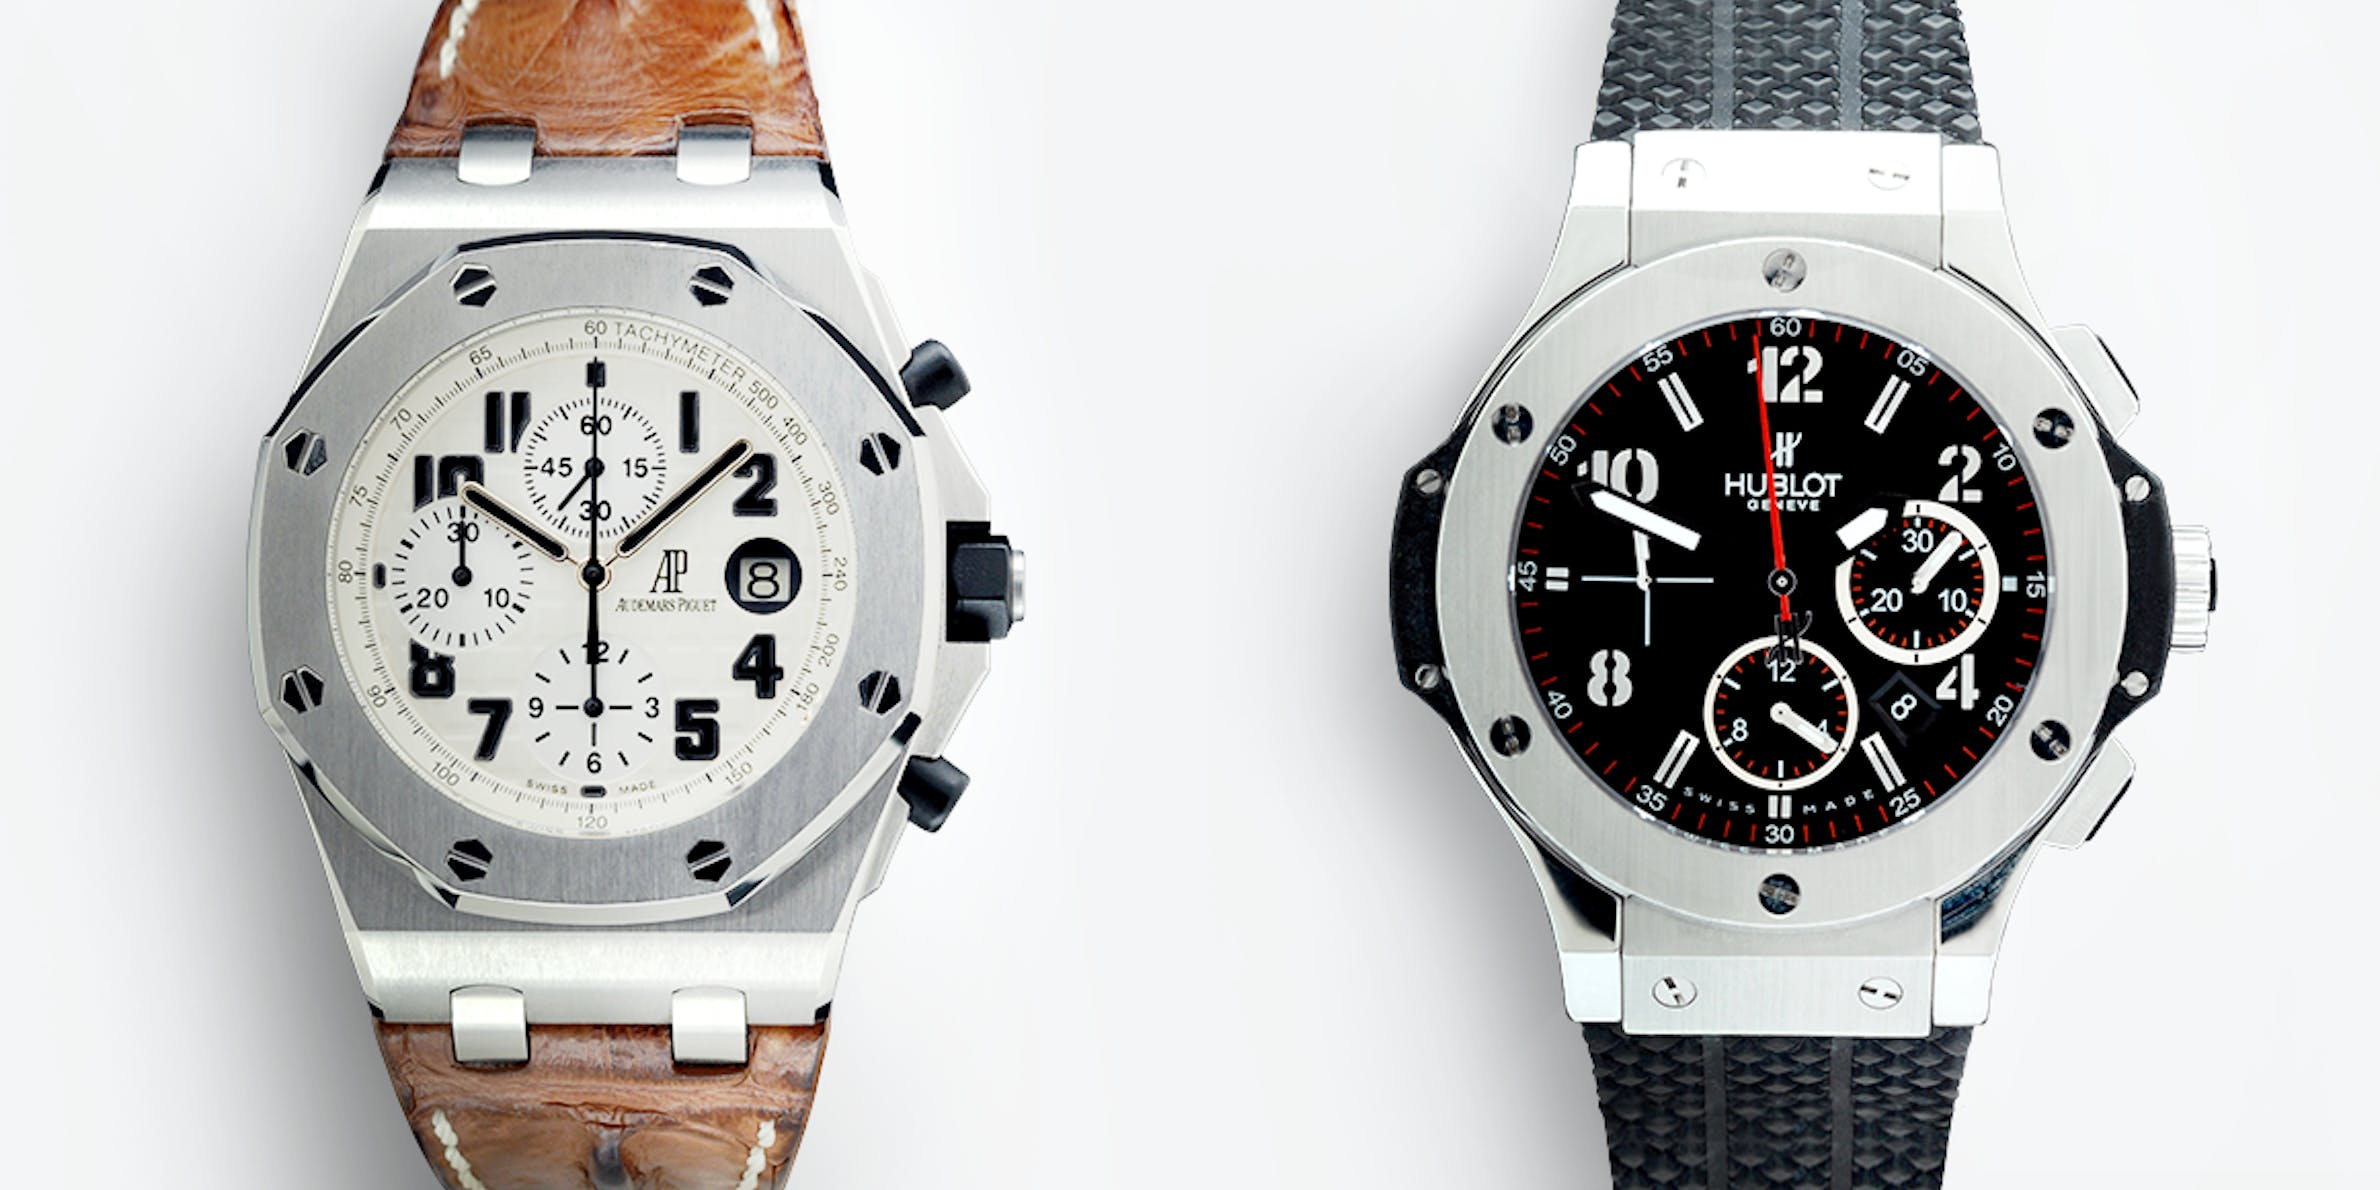 Audemars Piguet Royal Oak Offshore vs Hublot Big Bang